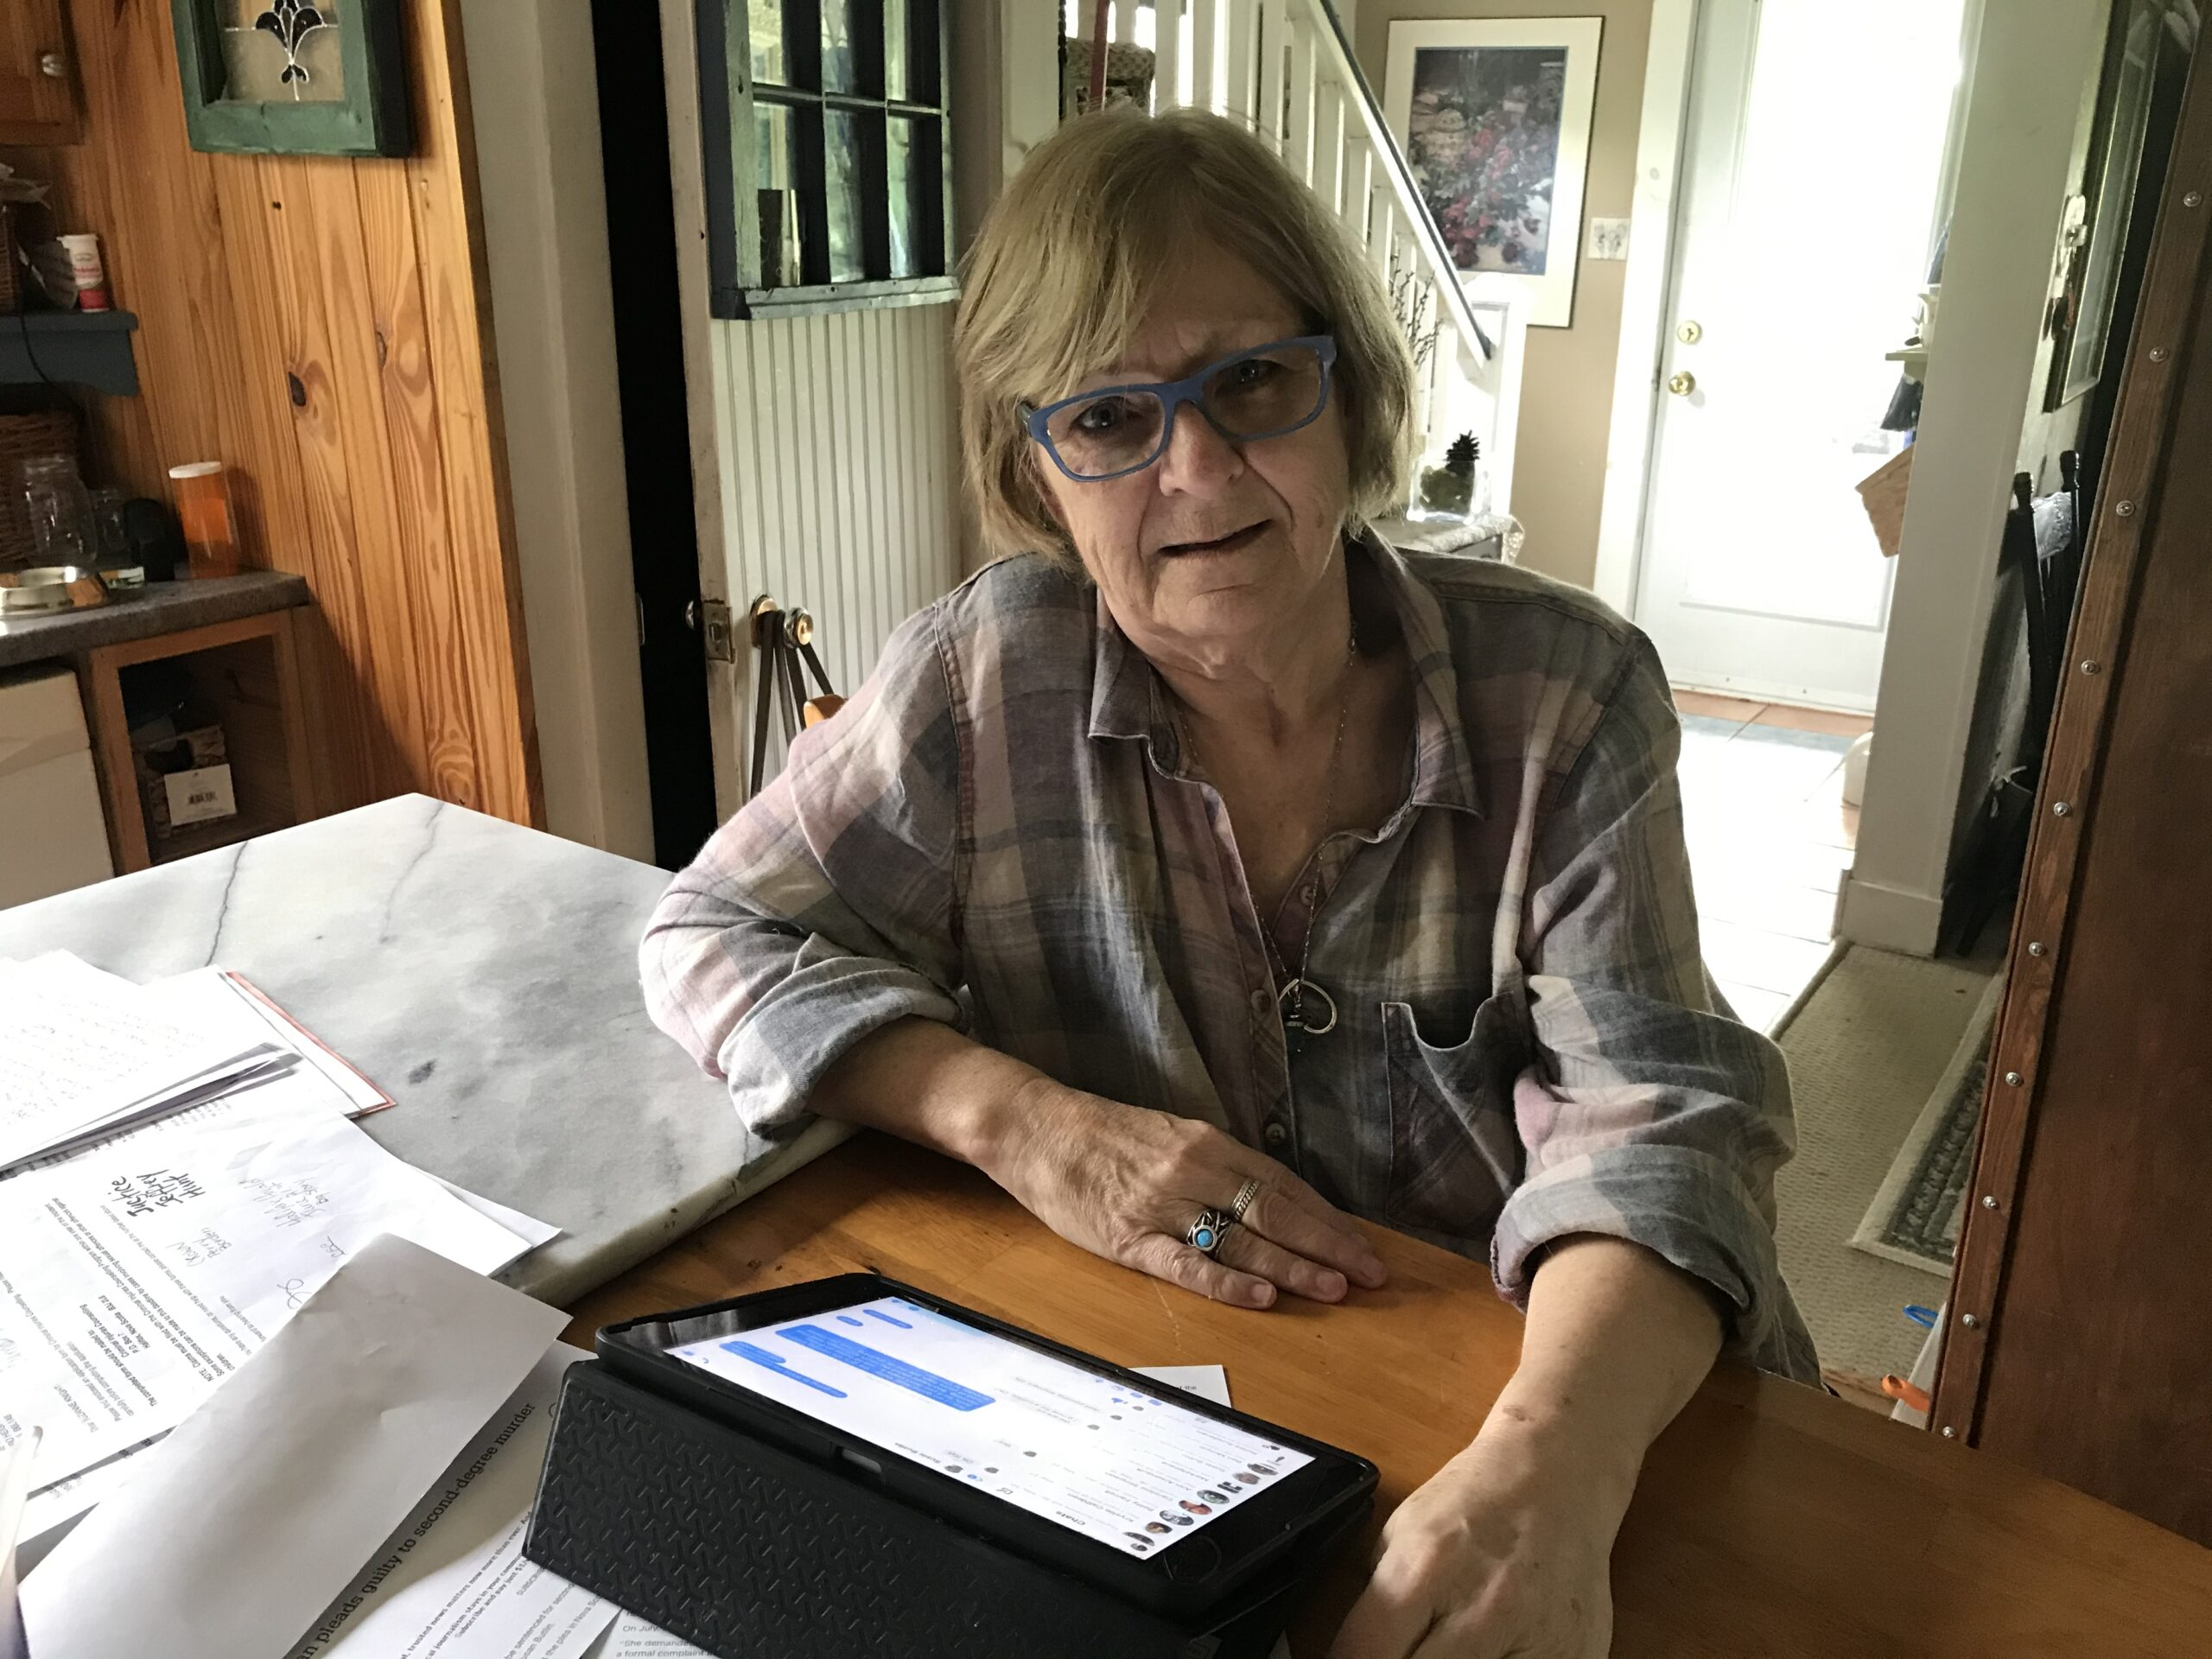 Suzanne Davis still has her Facebook chat messages with her late friend, Susie Butlin, on her Ipad.